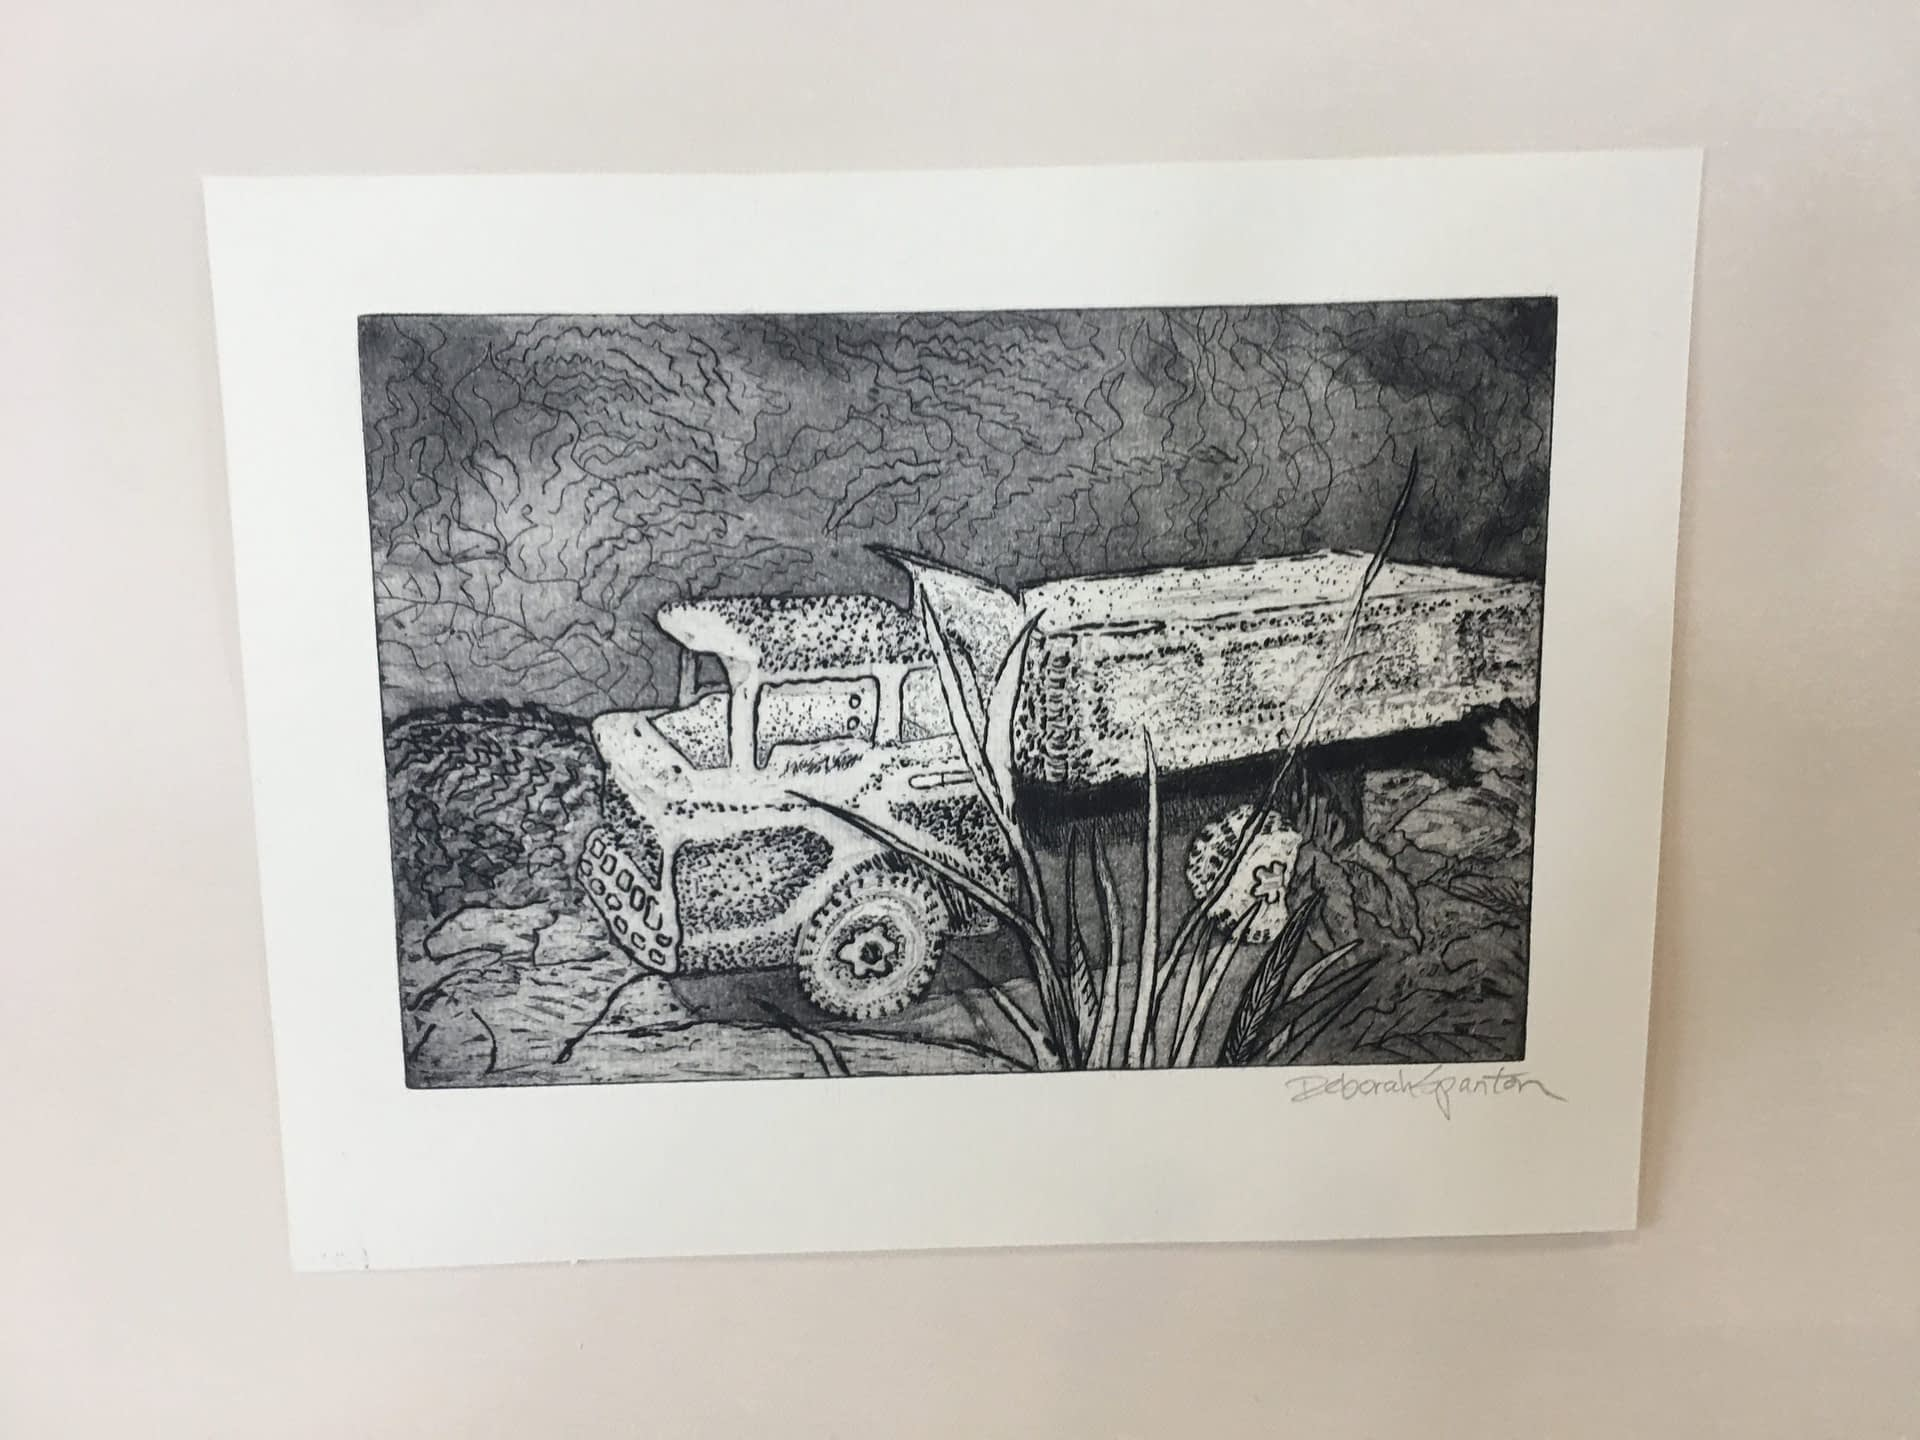 Etching: Truck edition 1 of 2